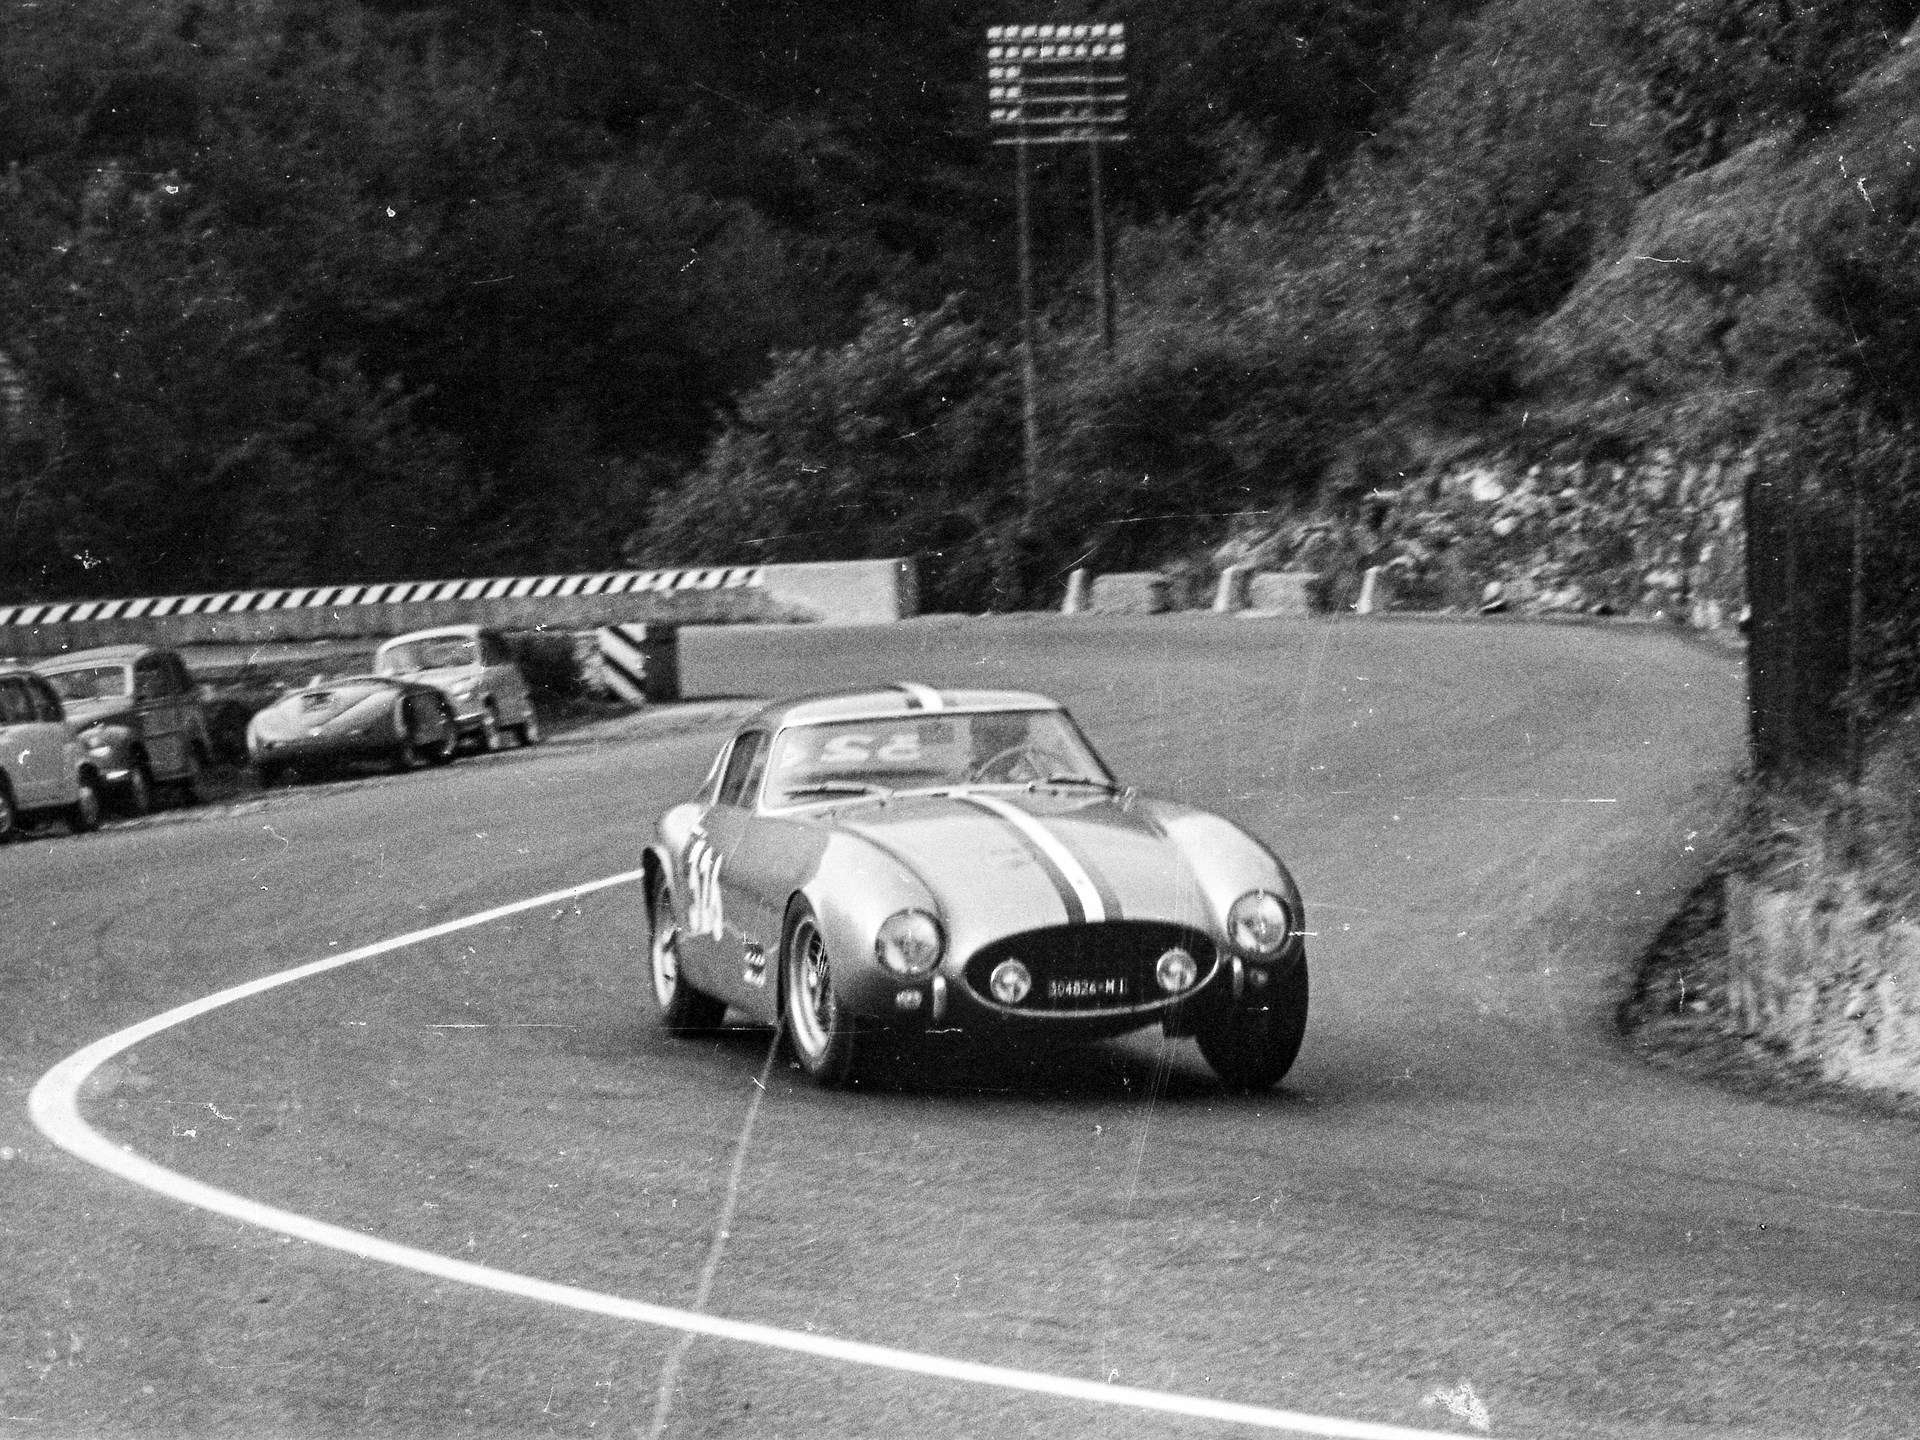 Chassis no. 0507 GT speeding towards a 3rd in class finish at the Pontedecimo-Giovi Hillclimb in 1957.